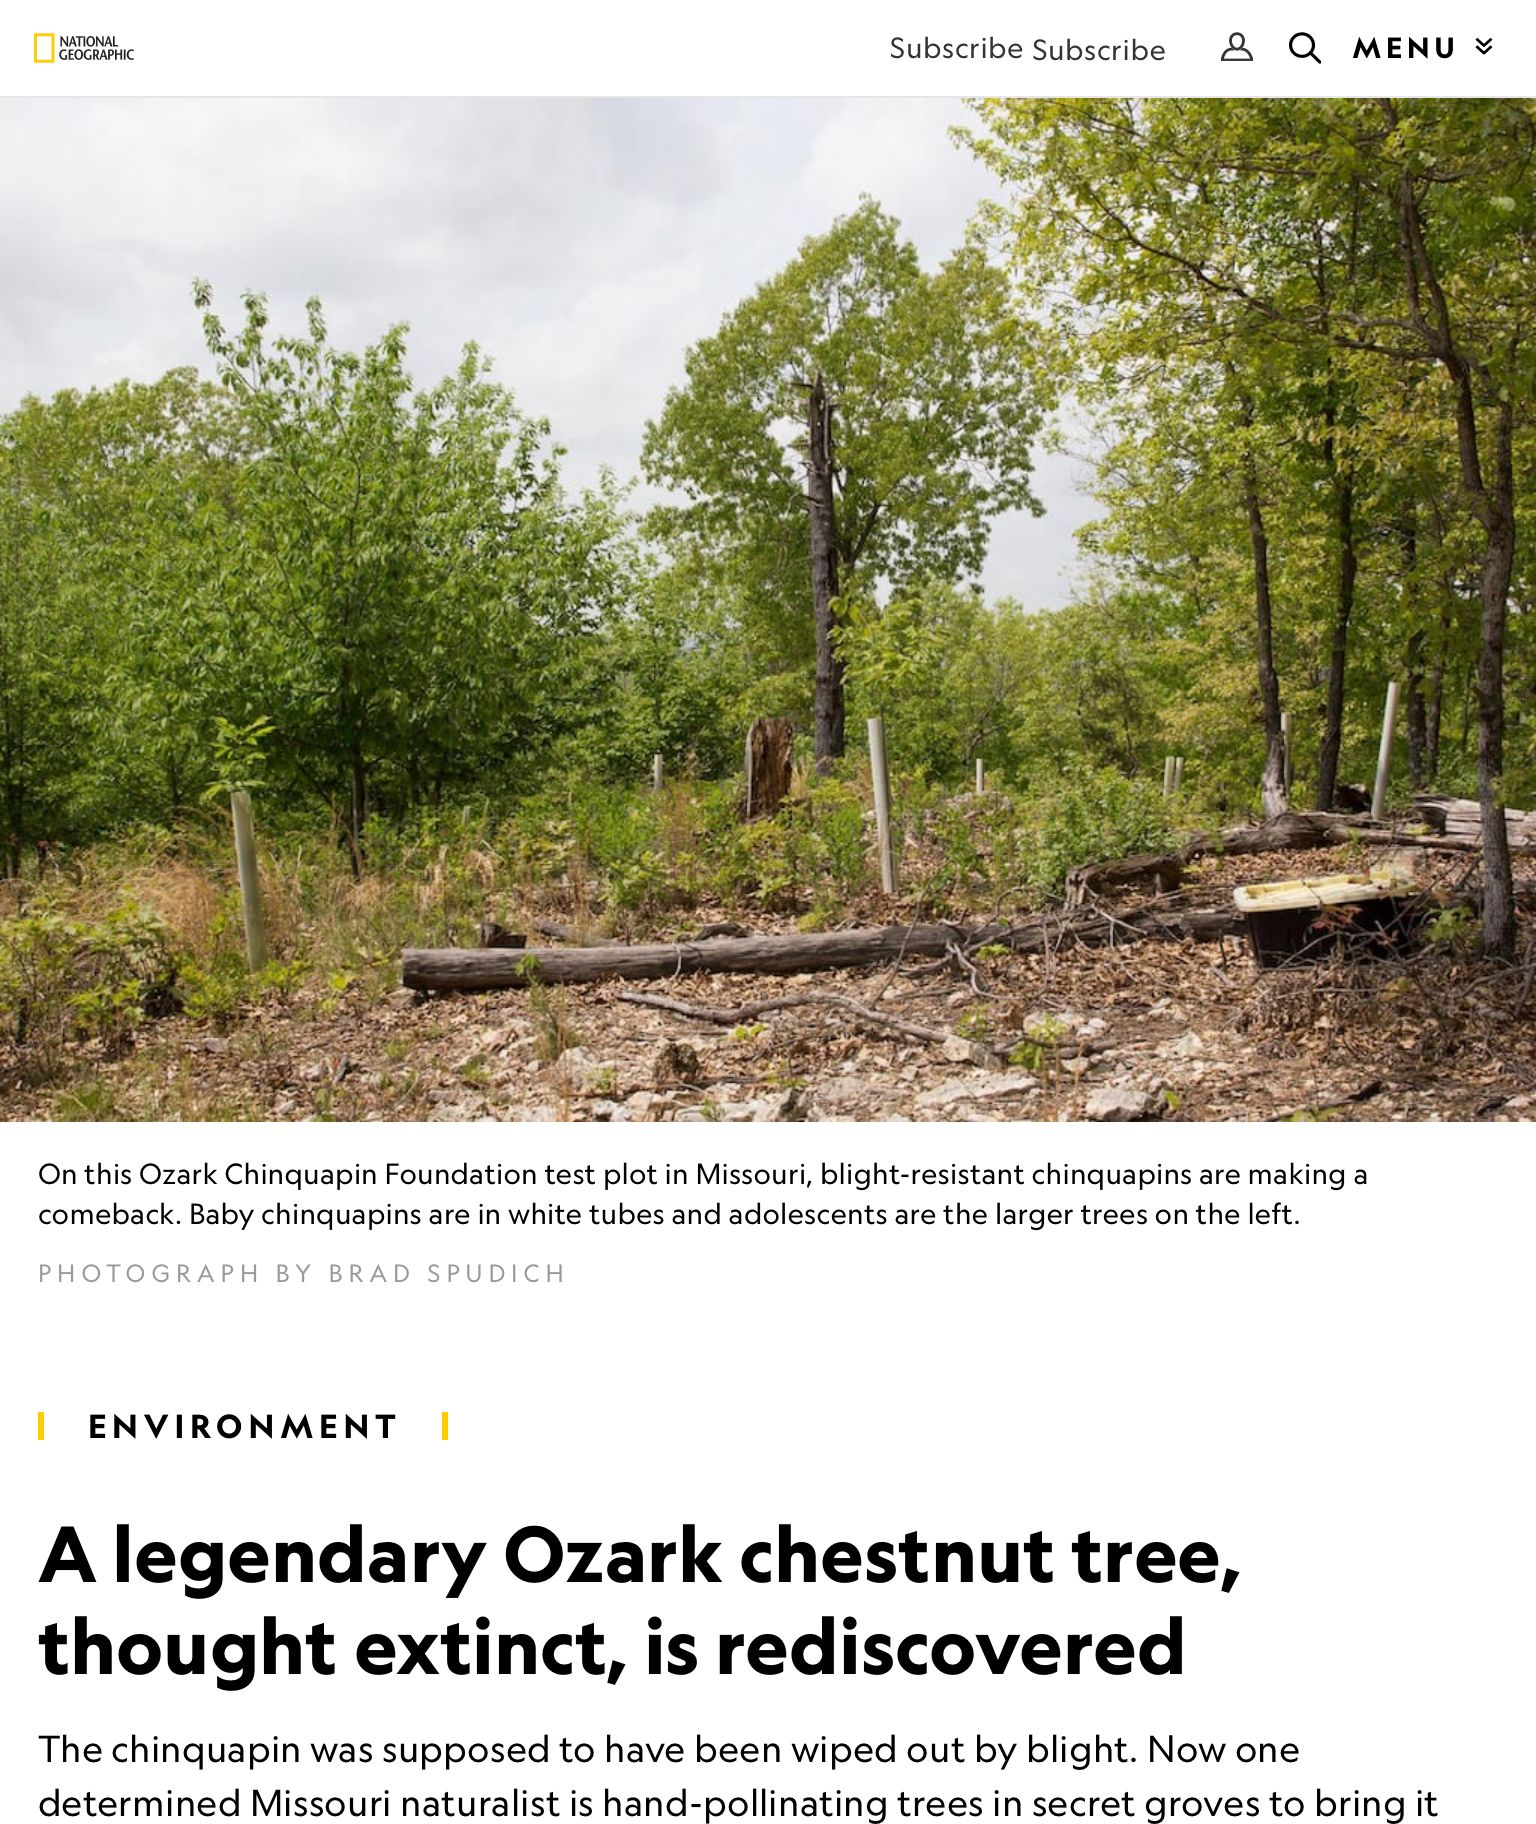 A Legendary Ozark Chestnut Tree Thought Extinct Is Rediscovered